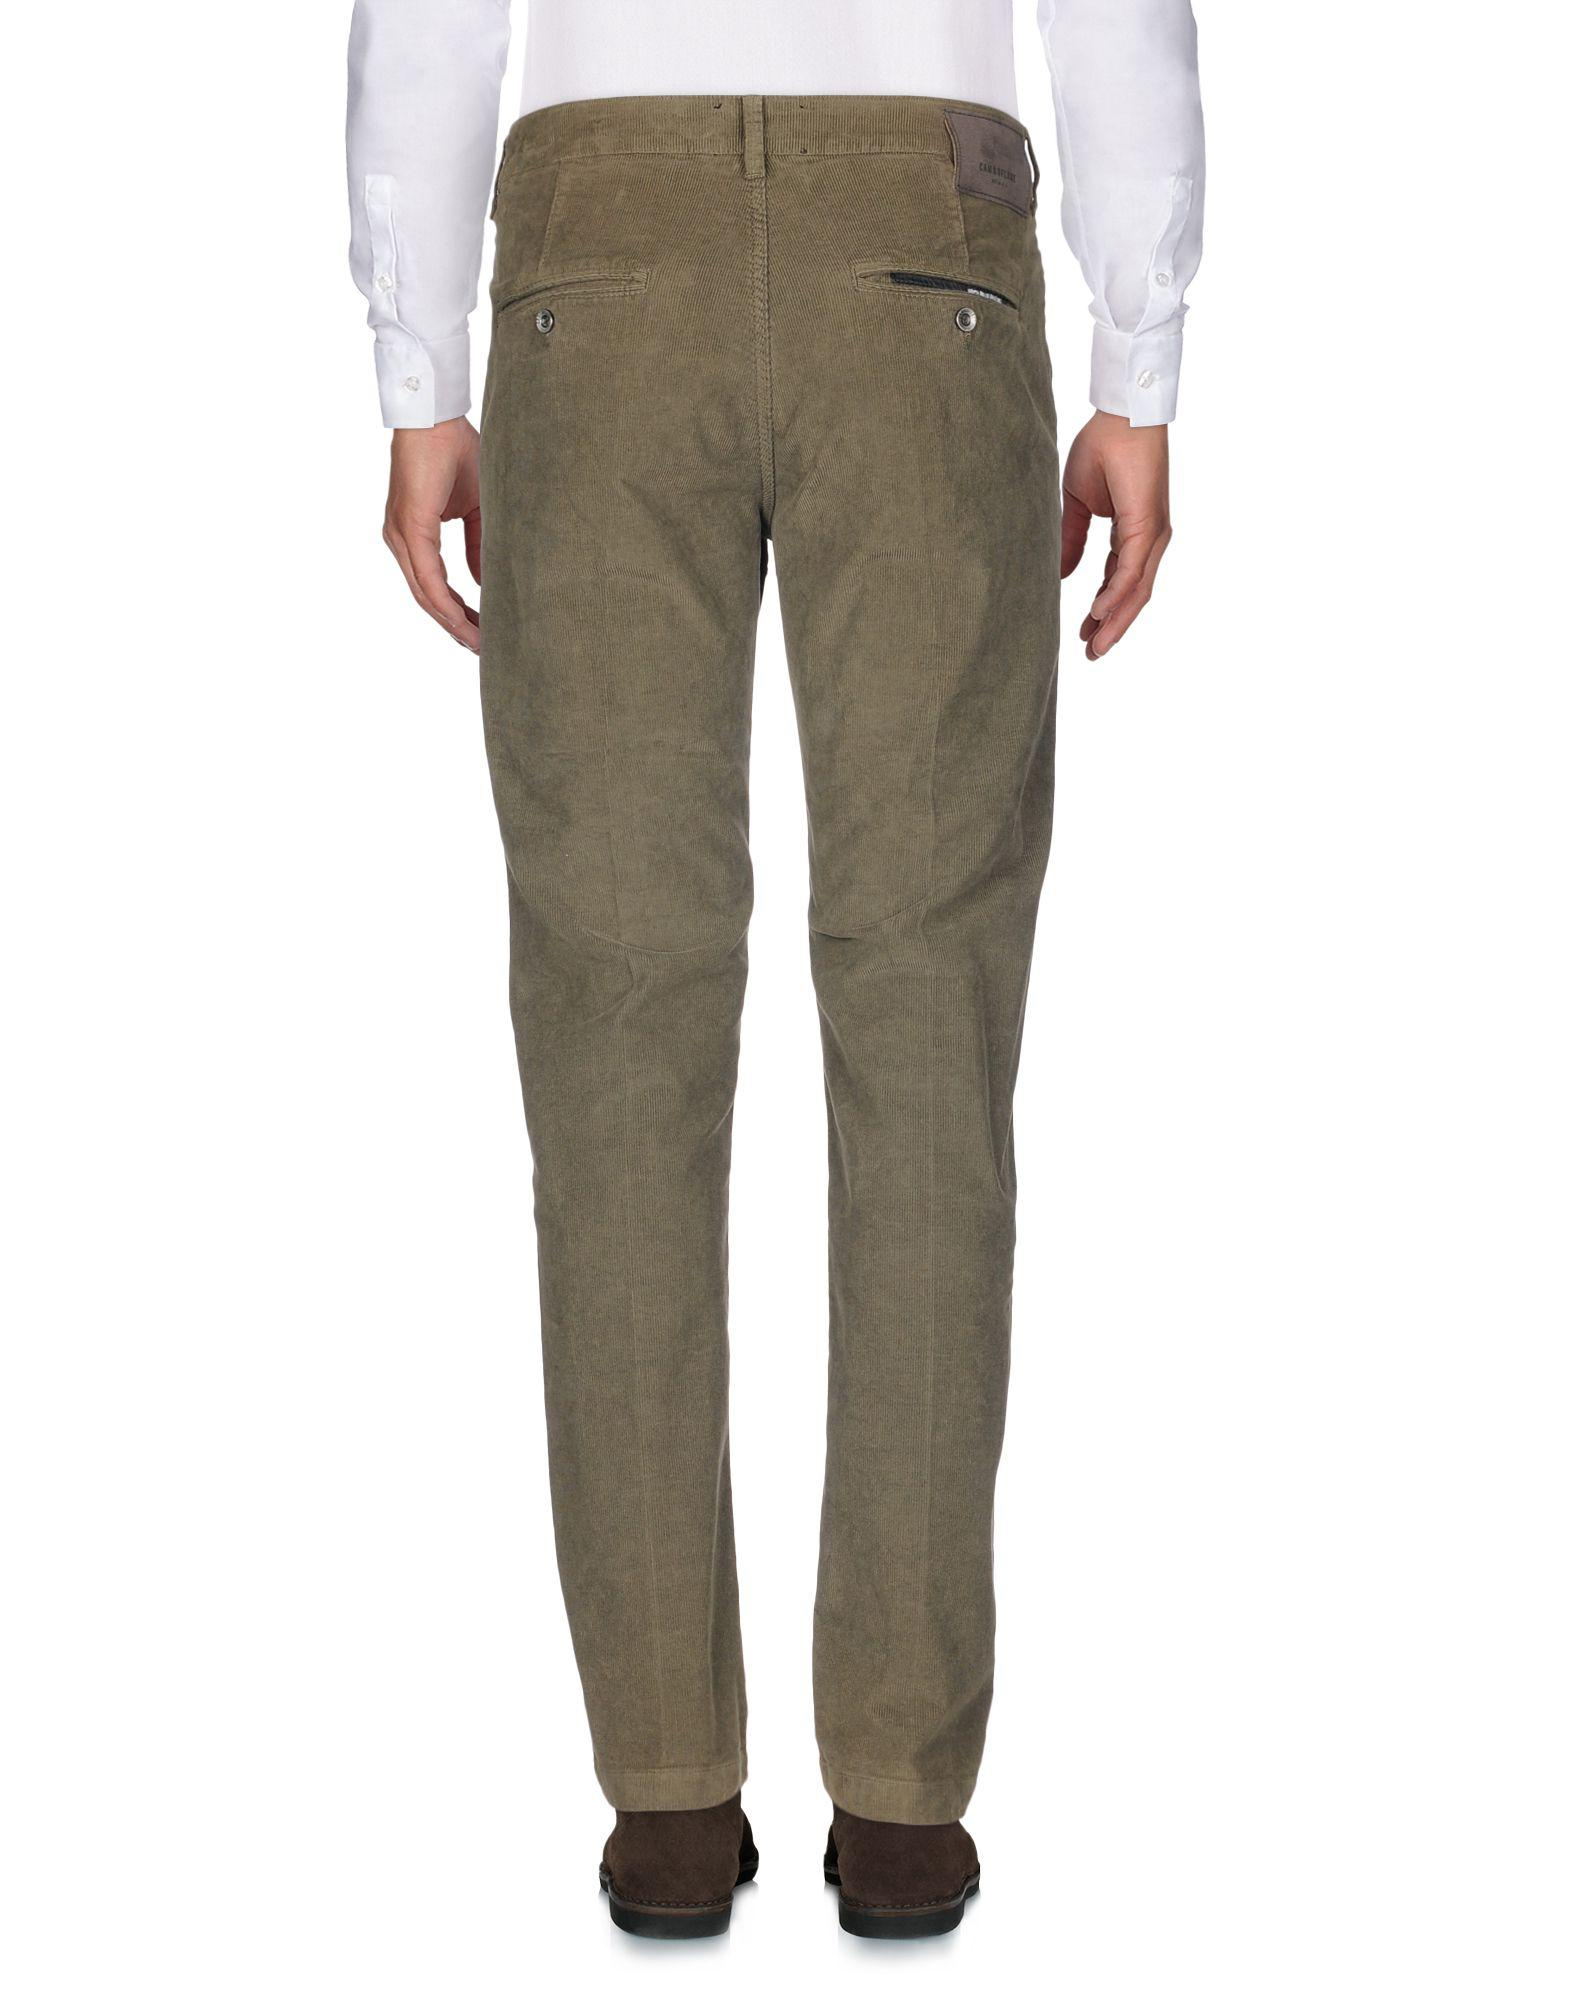 Camouflage AR and J. Corduroy Casual Trouser in Military Green (Green) for Men